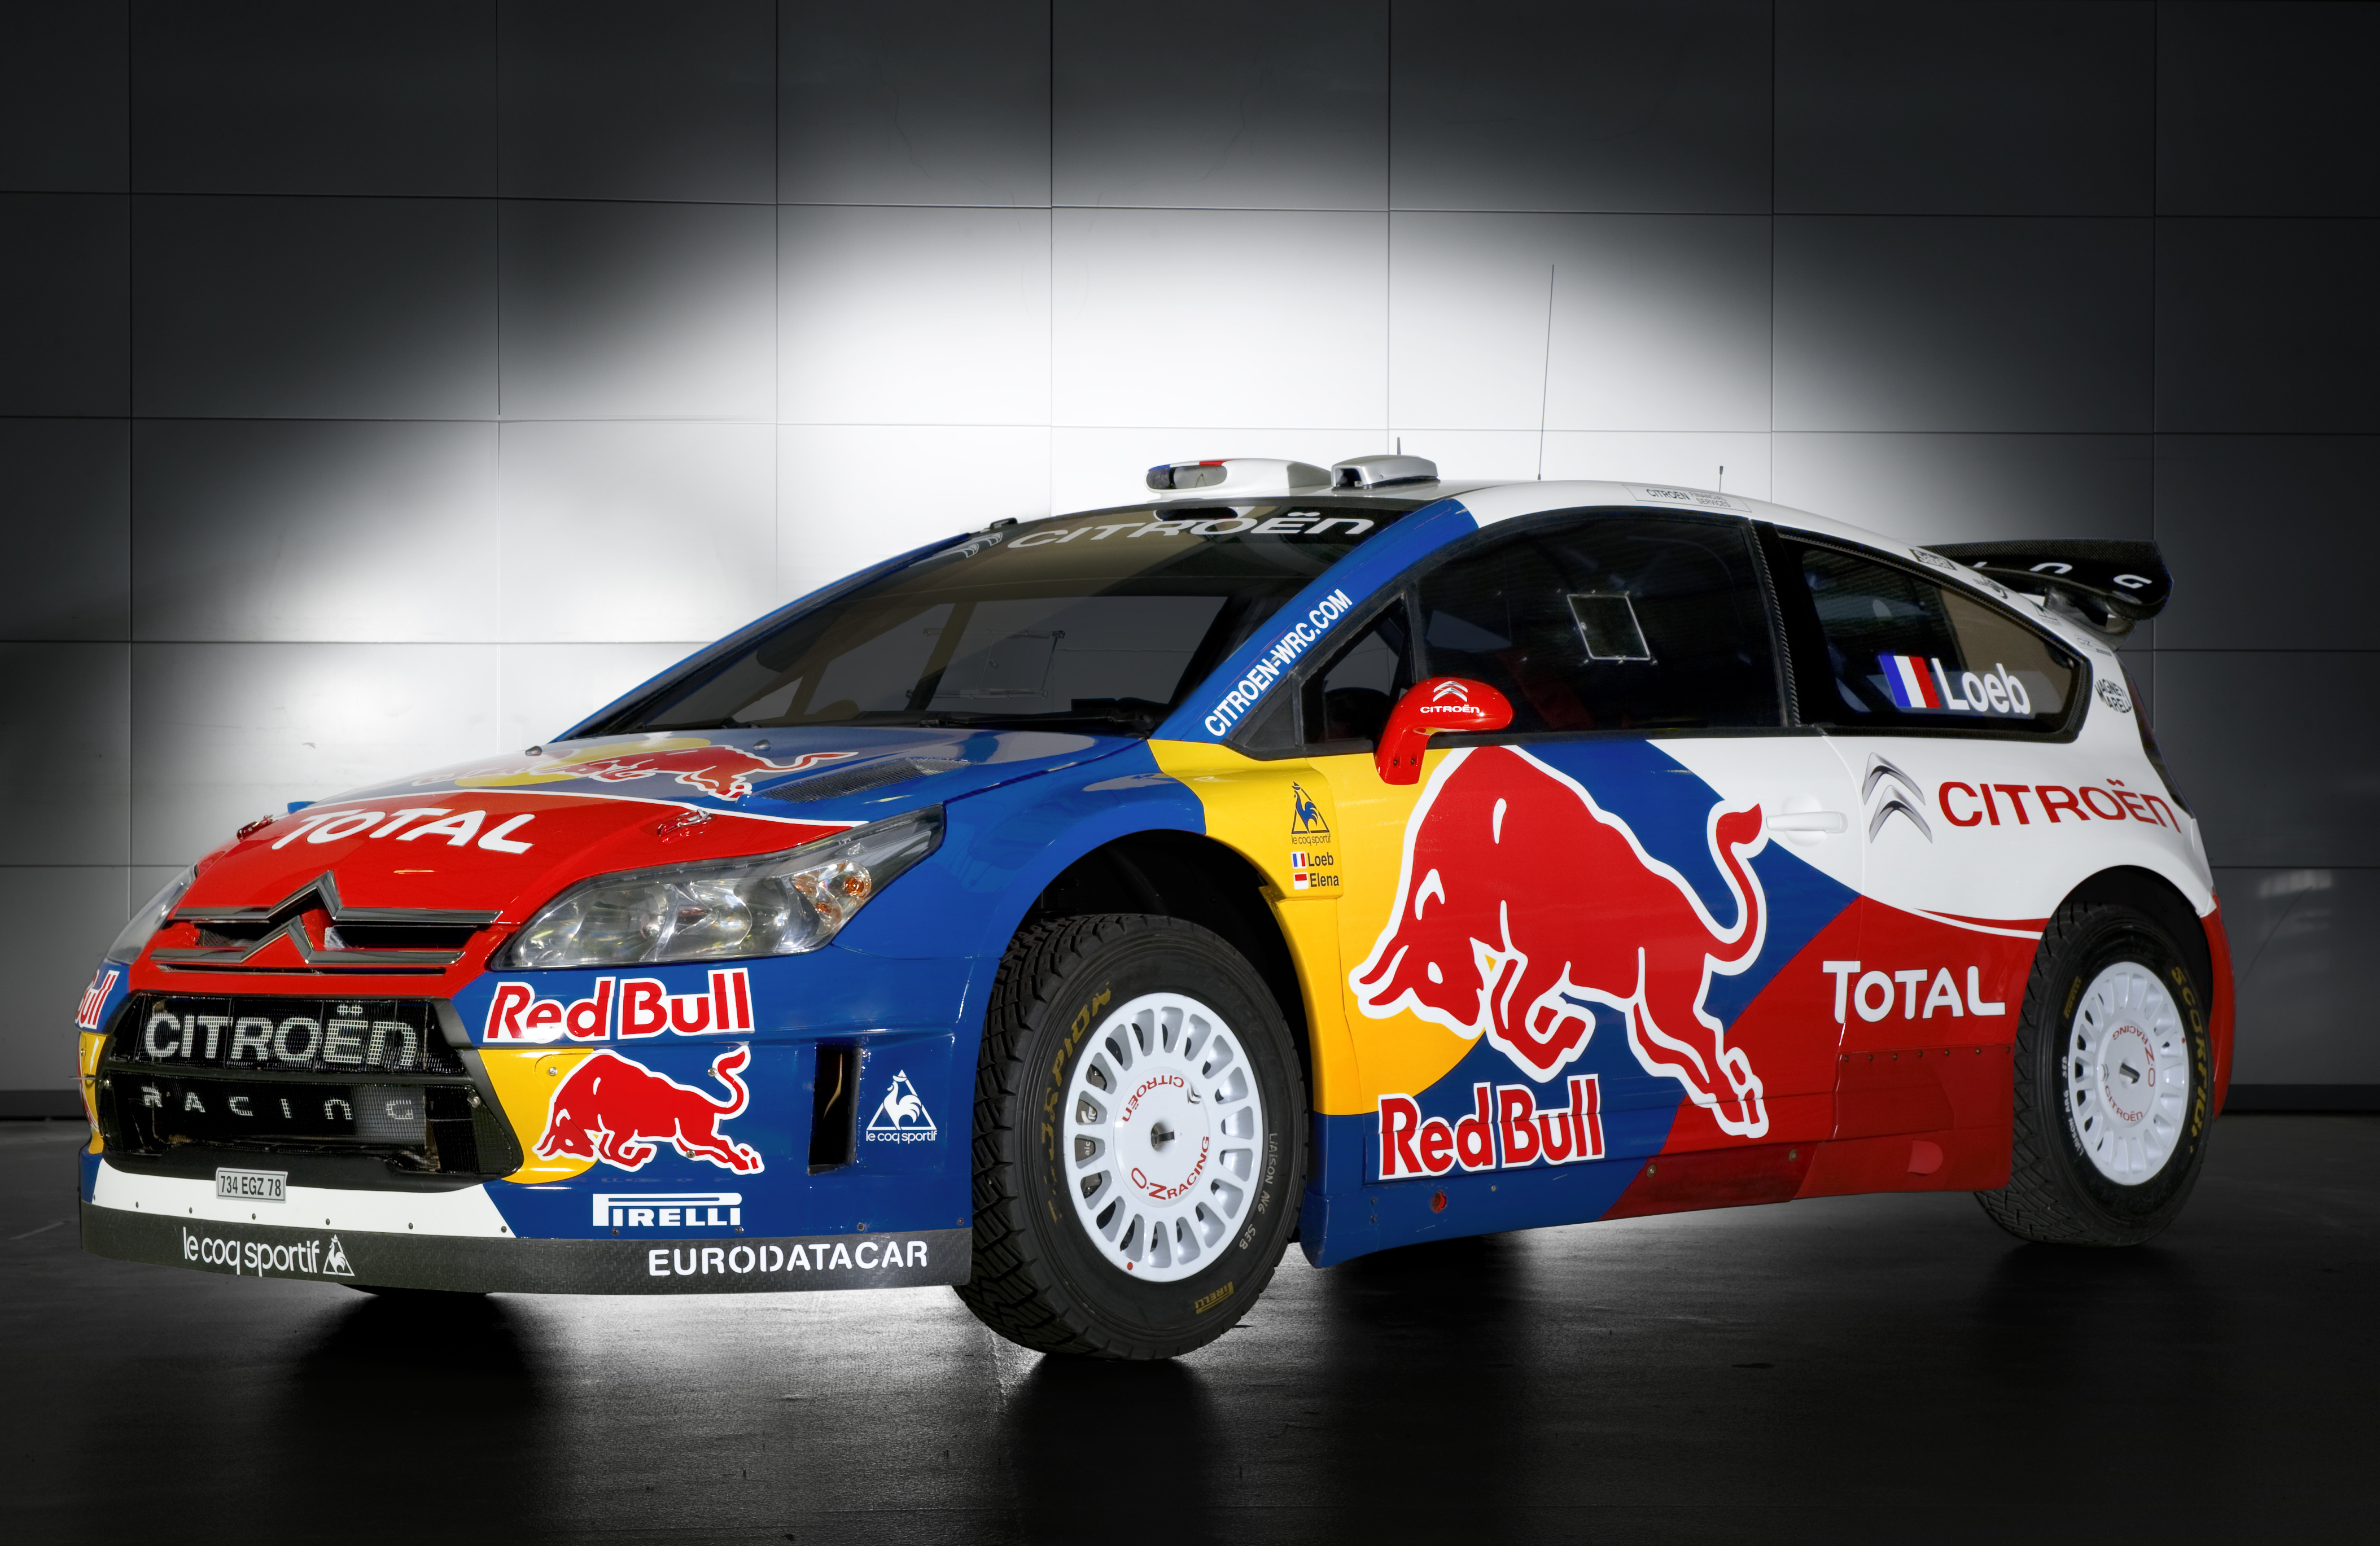 2009 Citroen C4 Wrc Picture 15659 HD Wallpapers Download free images and photos [musssic.tk]